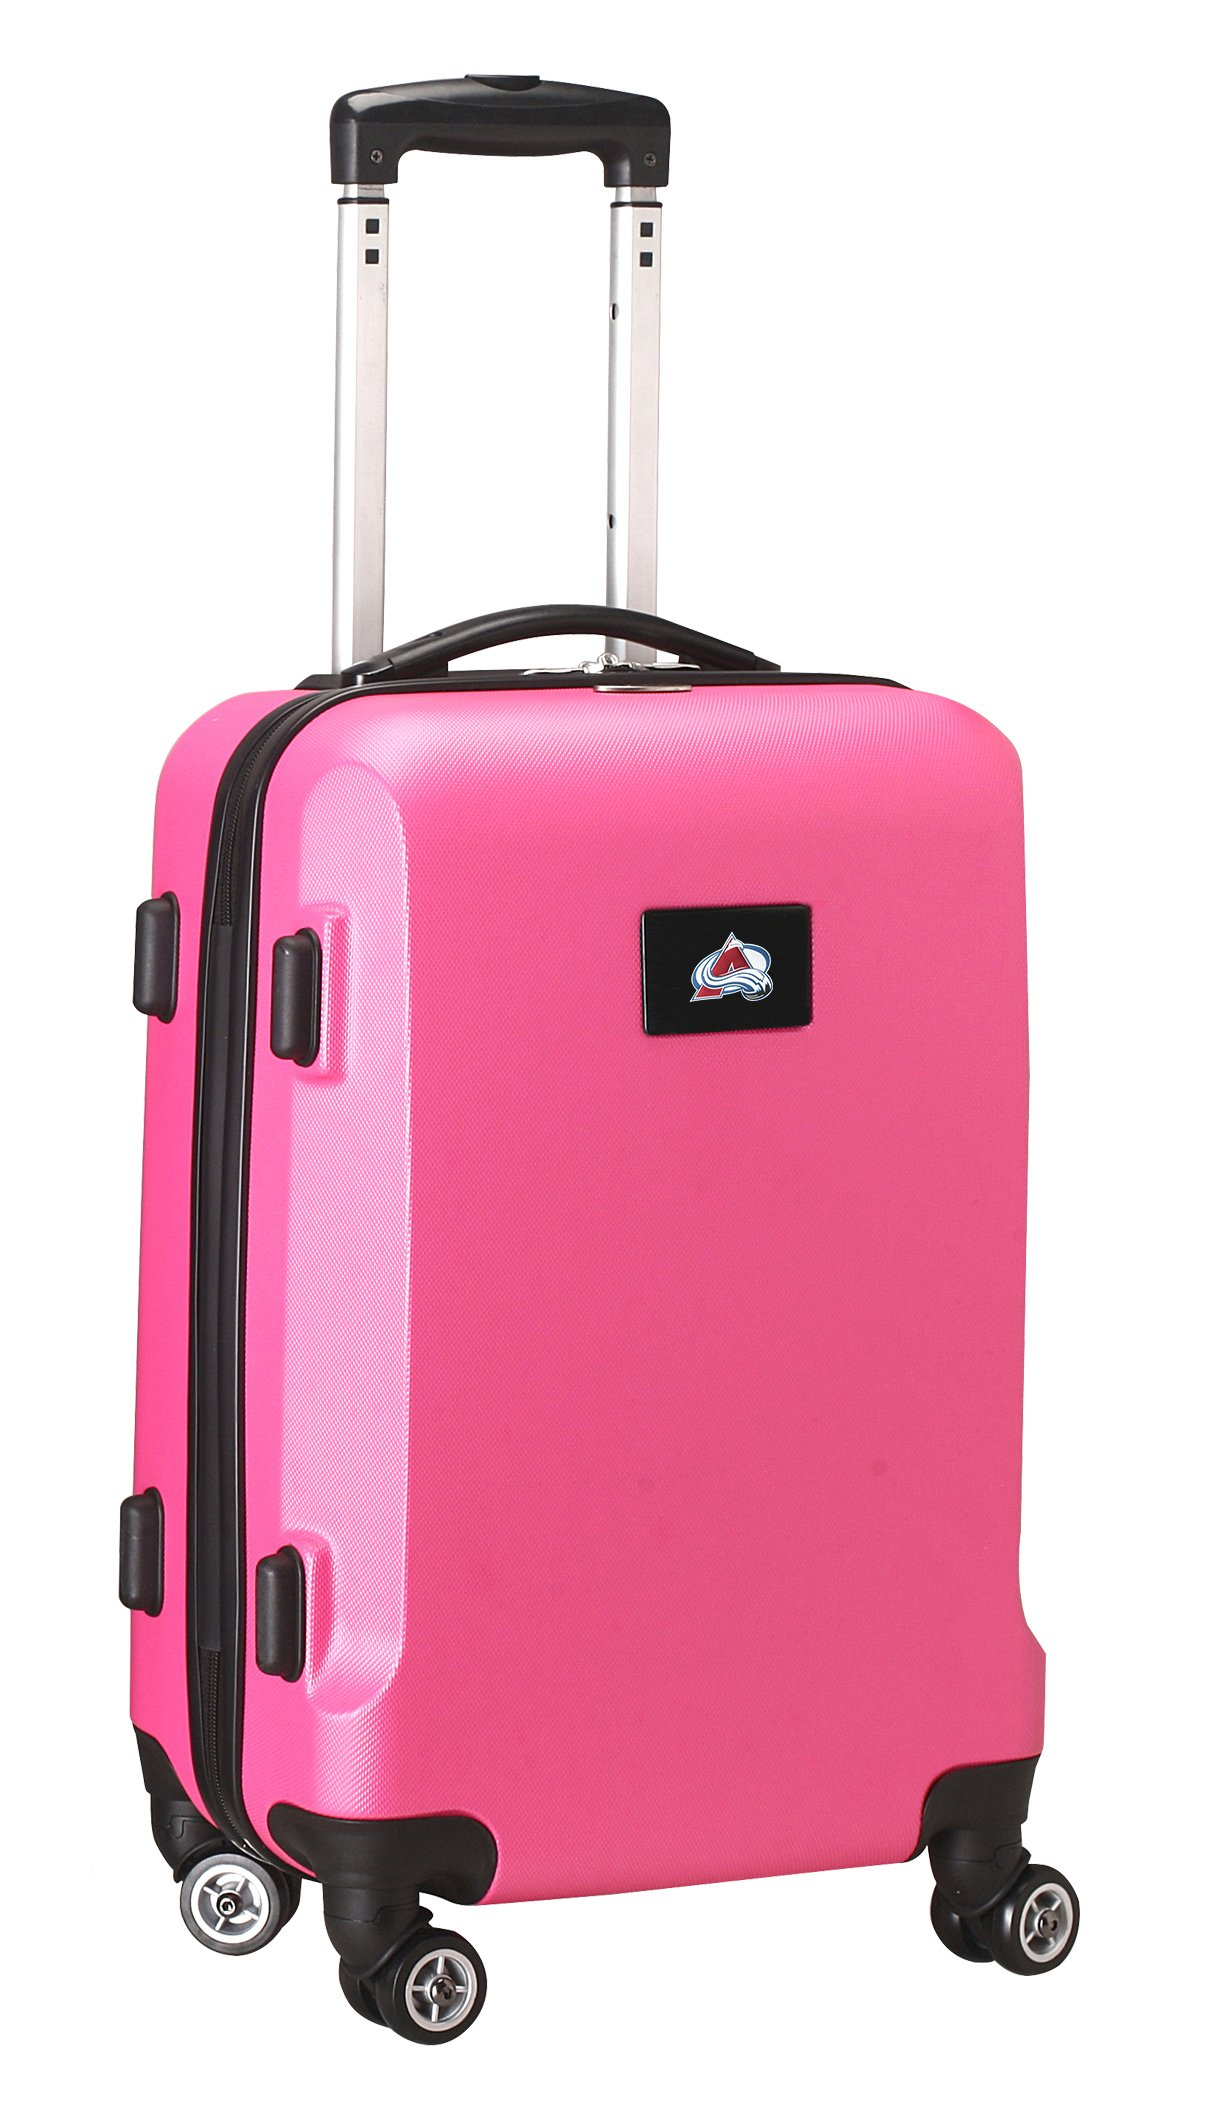 Denco NHL Colorado Avalanche Carry-On Hardcase Luggage Spinner, Pink